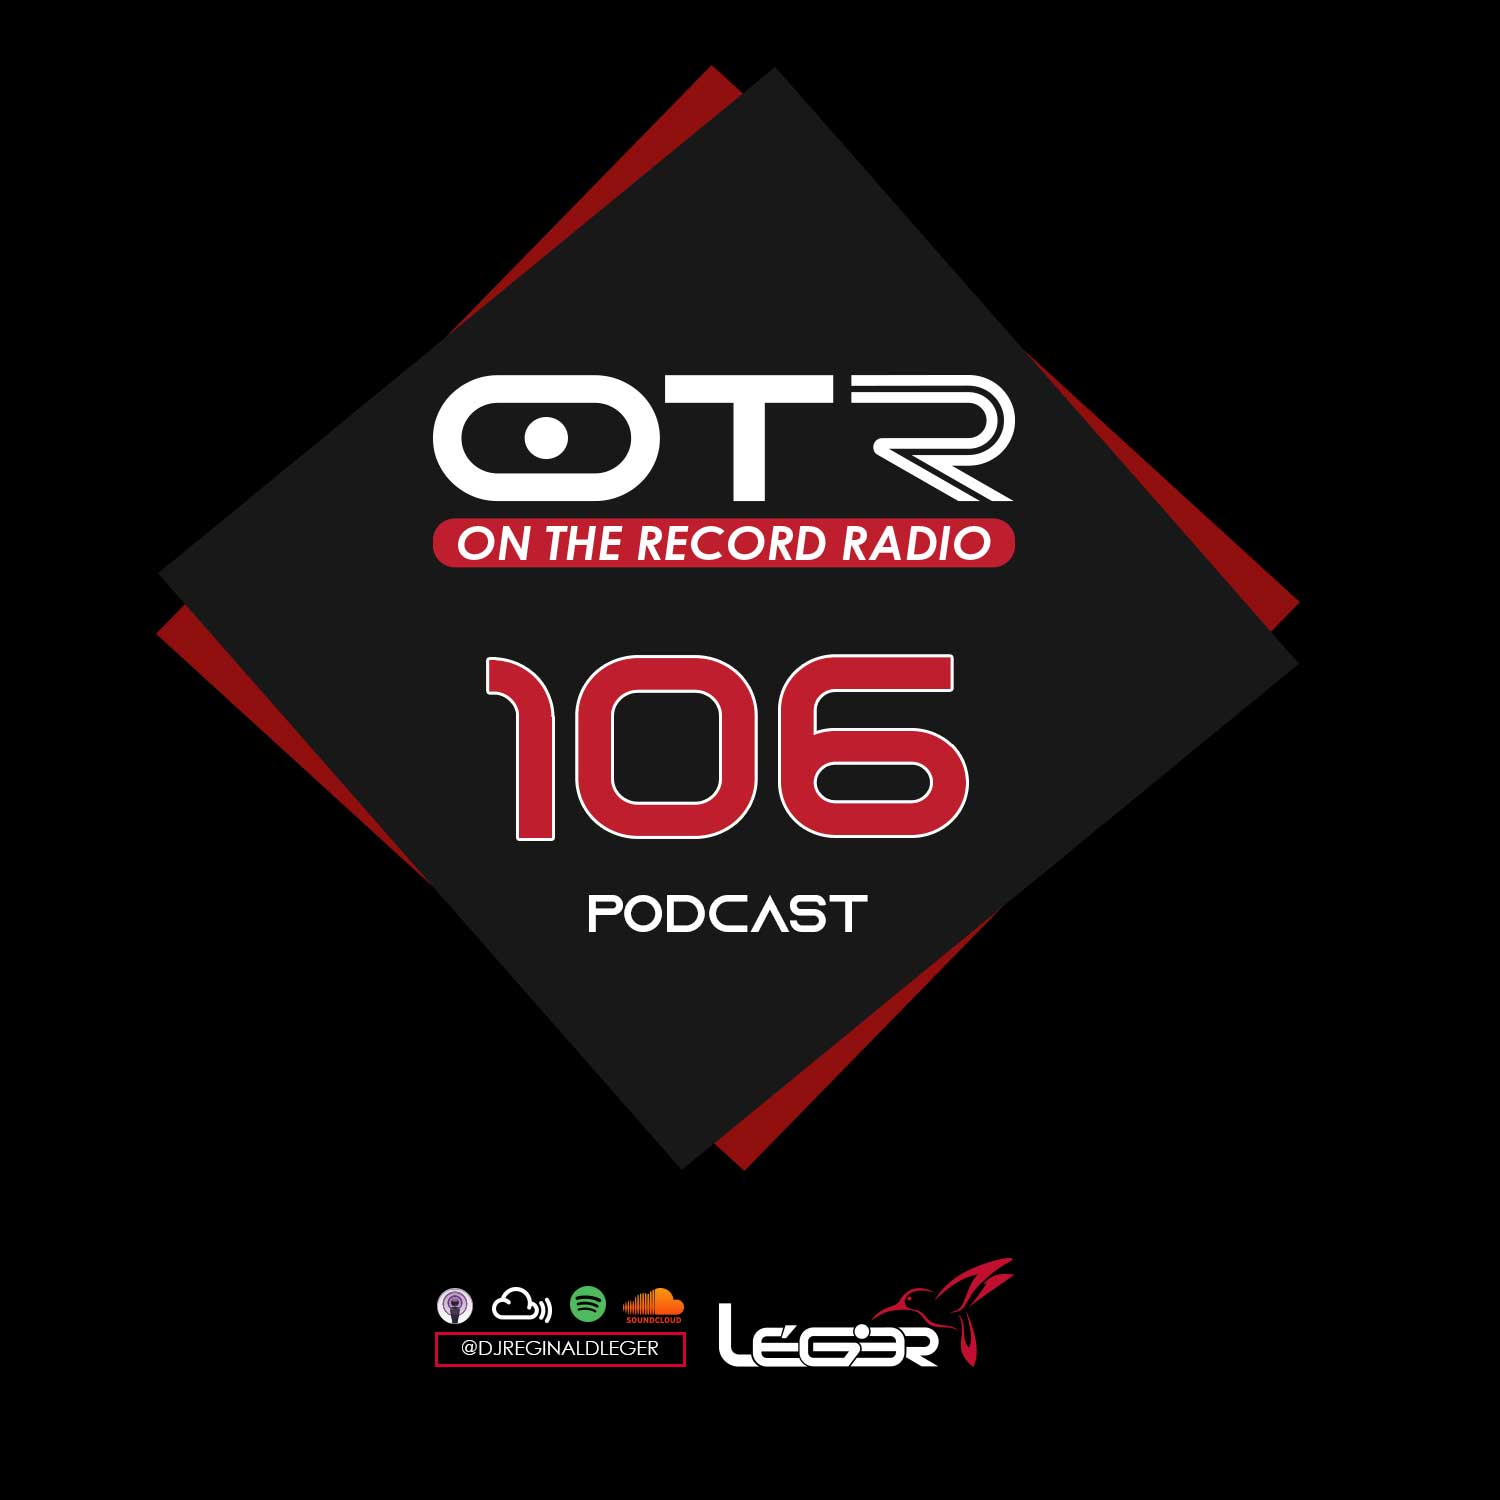 On The Record | OTR 106